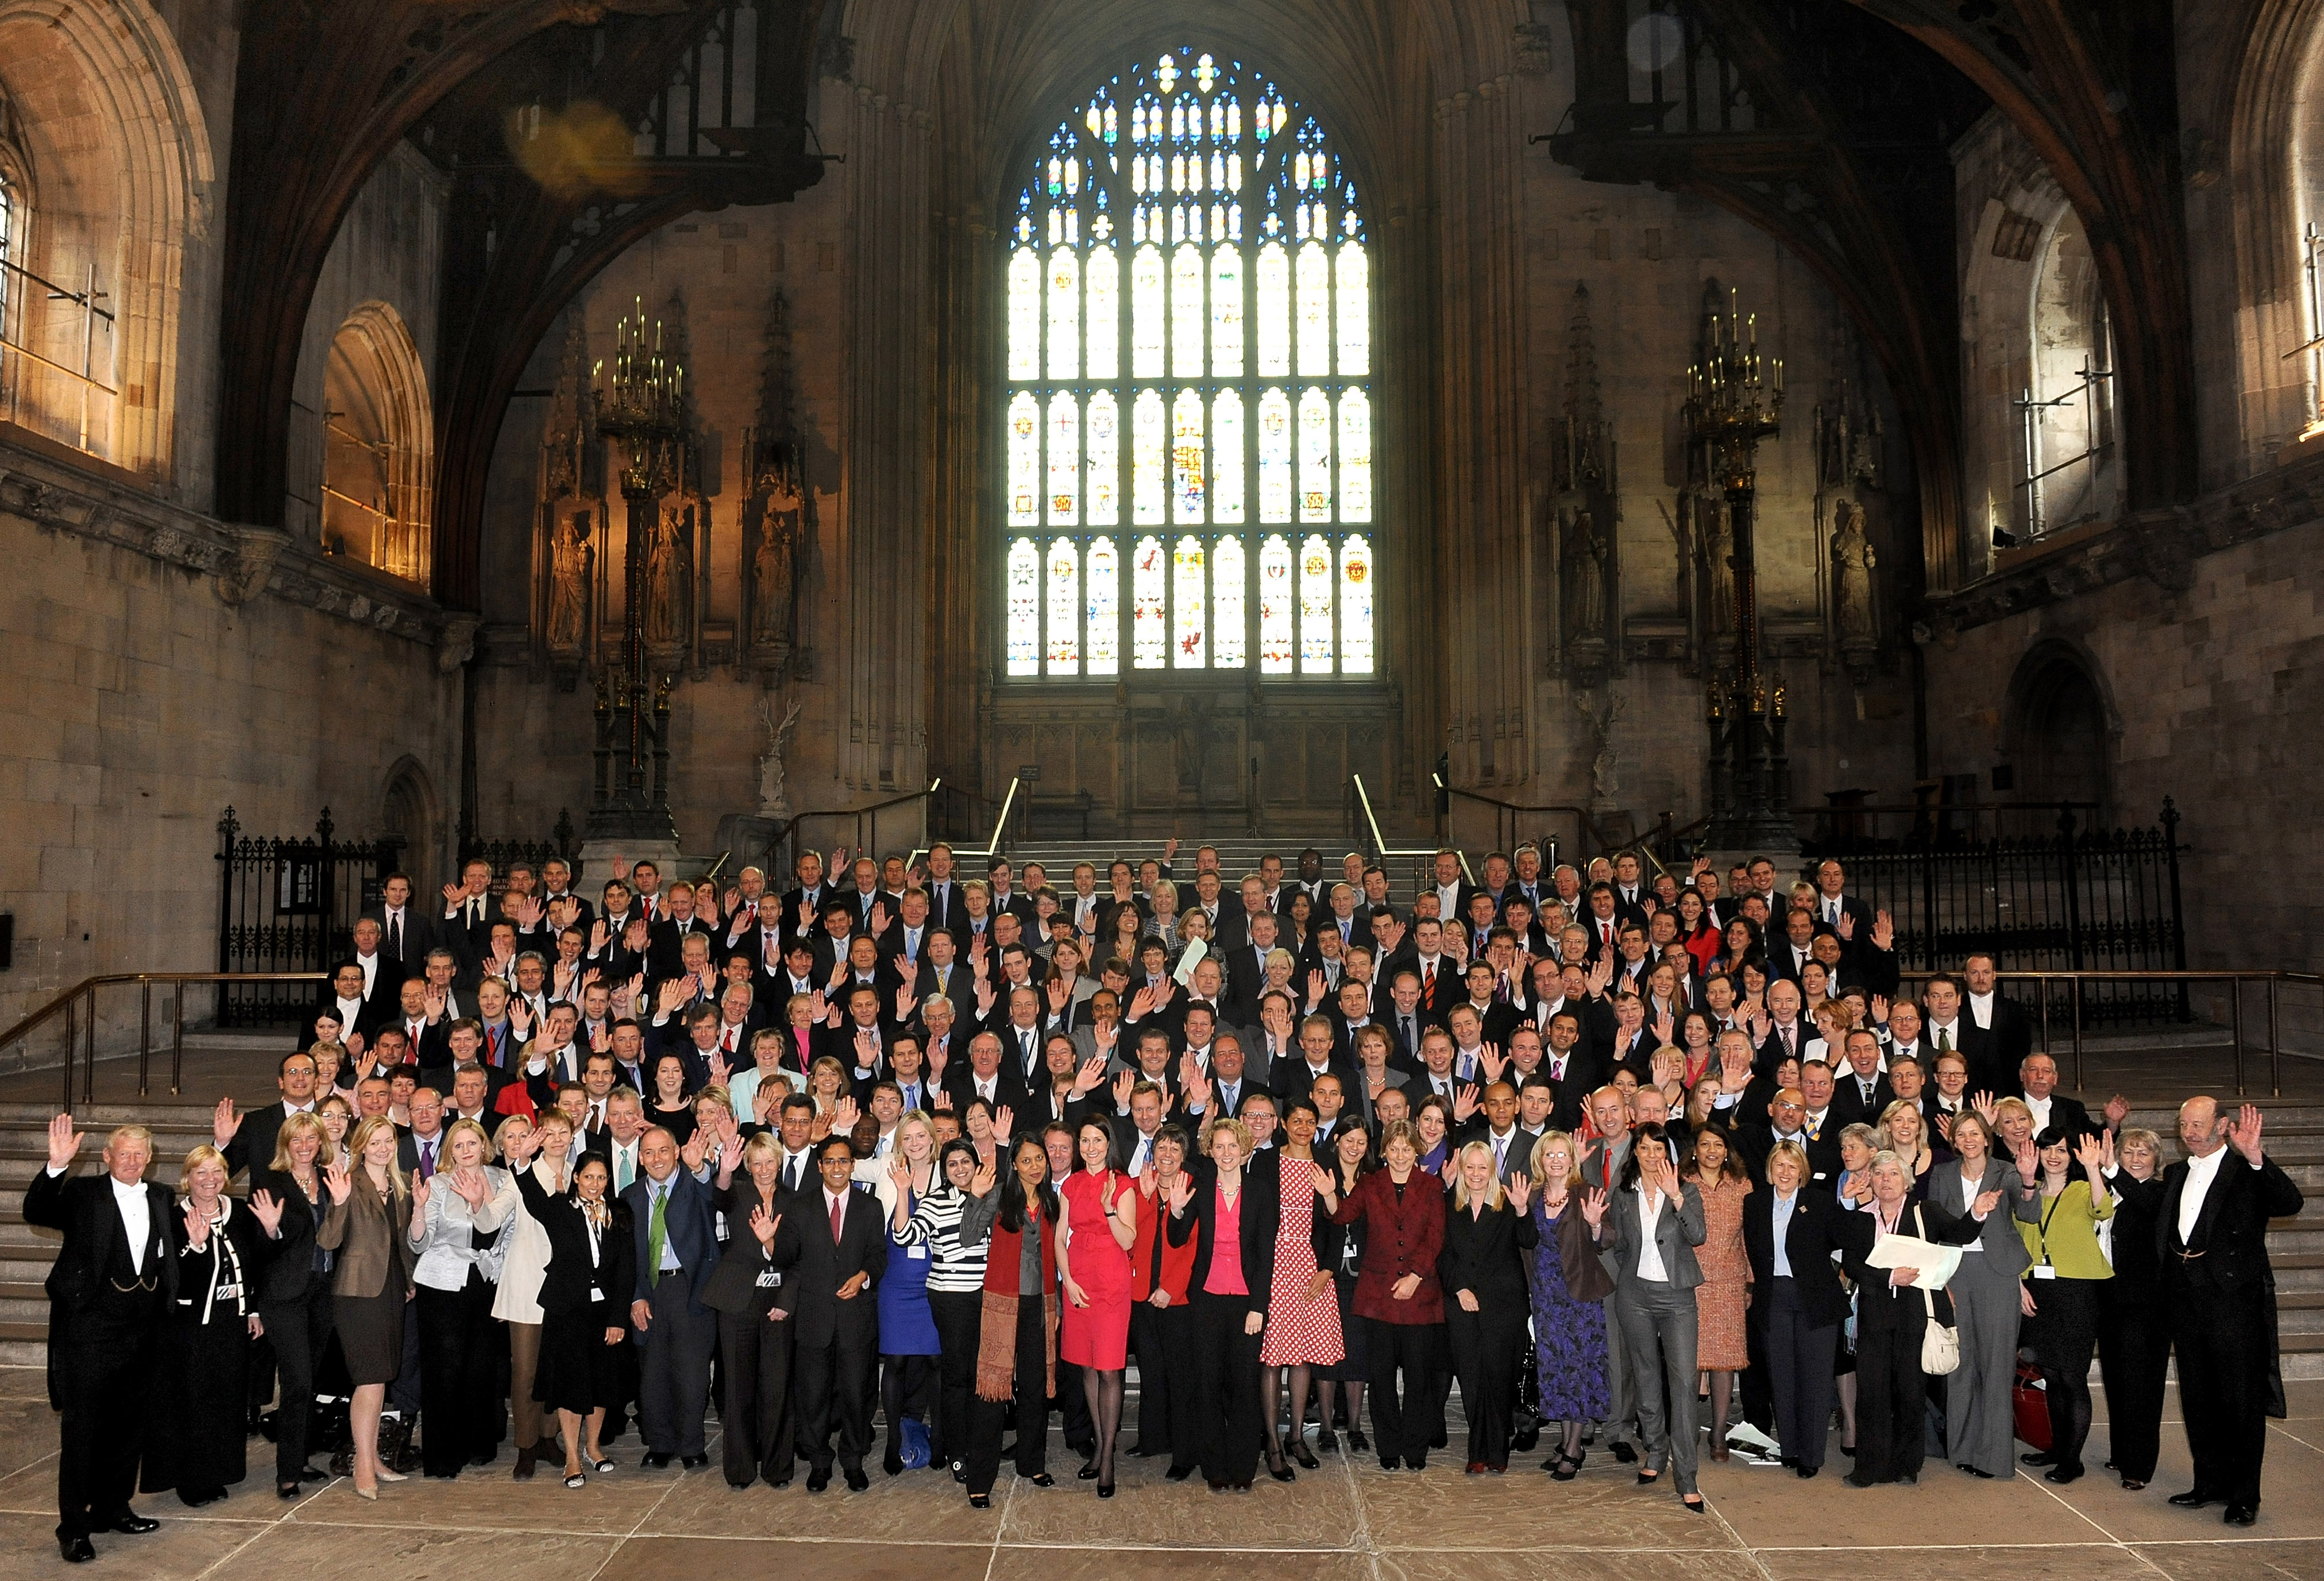 The majority of the 232 new MPs elected in the 2010 general election pose for a group picture.